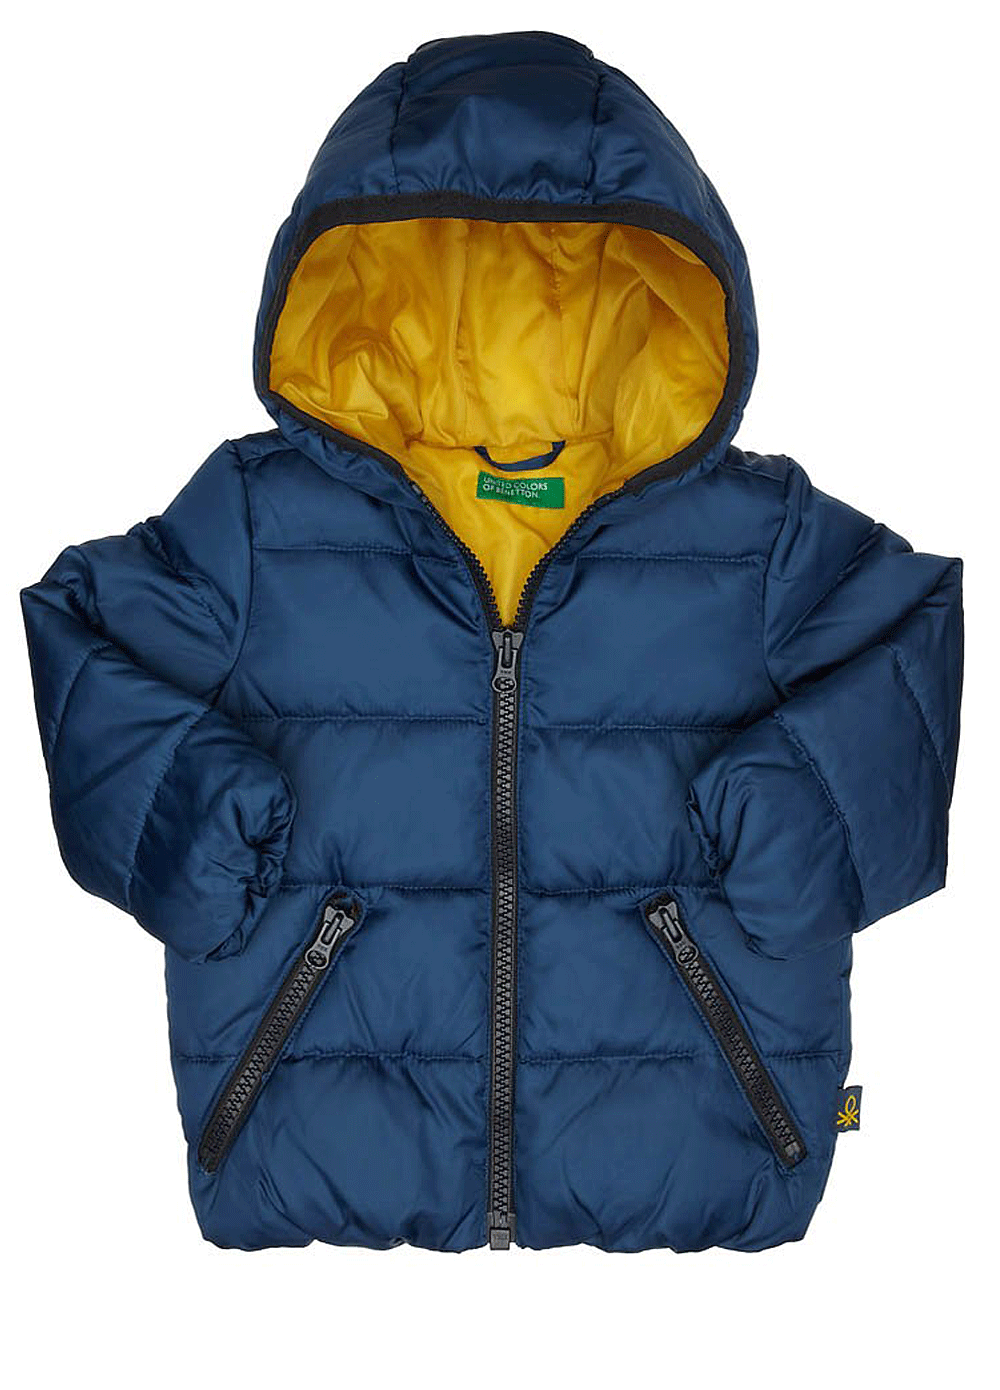 Find a great selection of kids' coats & jackets at tentrosegaper.ga Shop fleece jackets, raincoats, vests & more. Totally free shipping & returns.